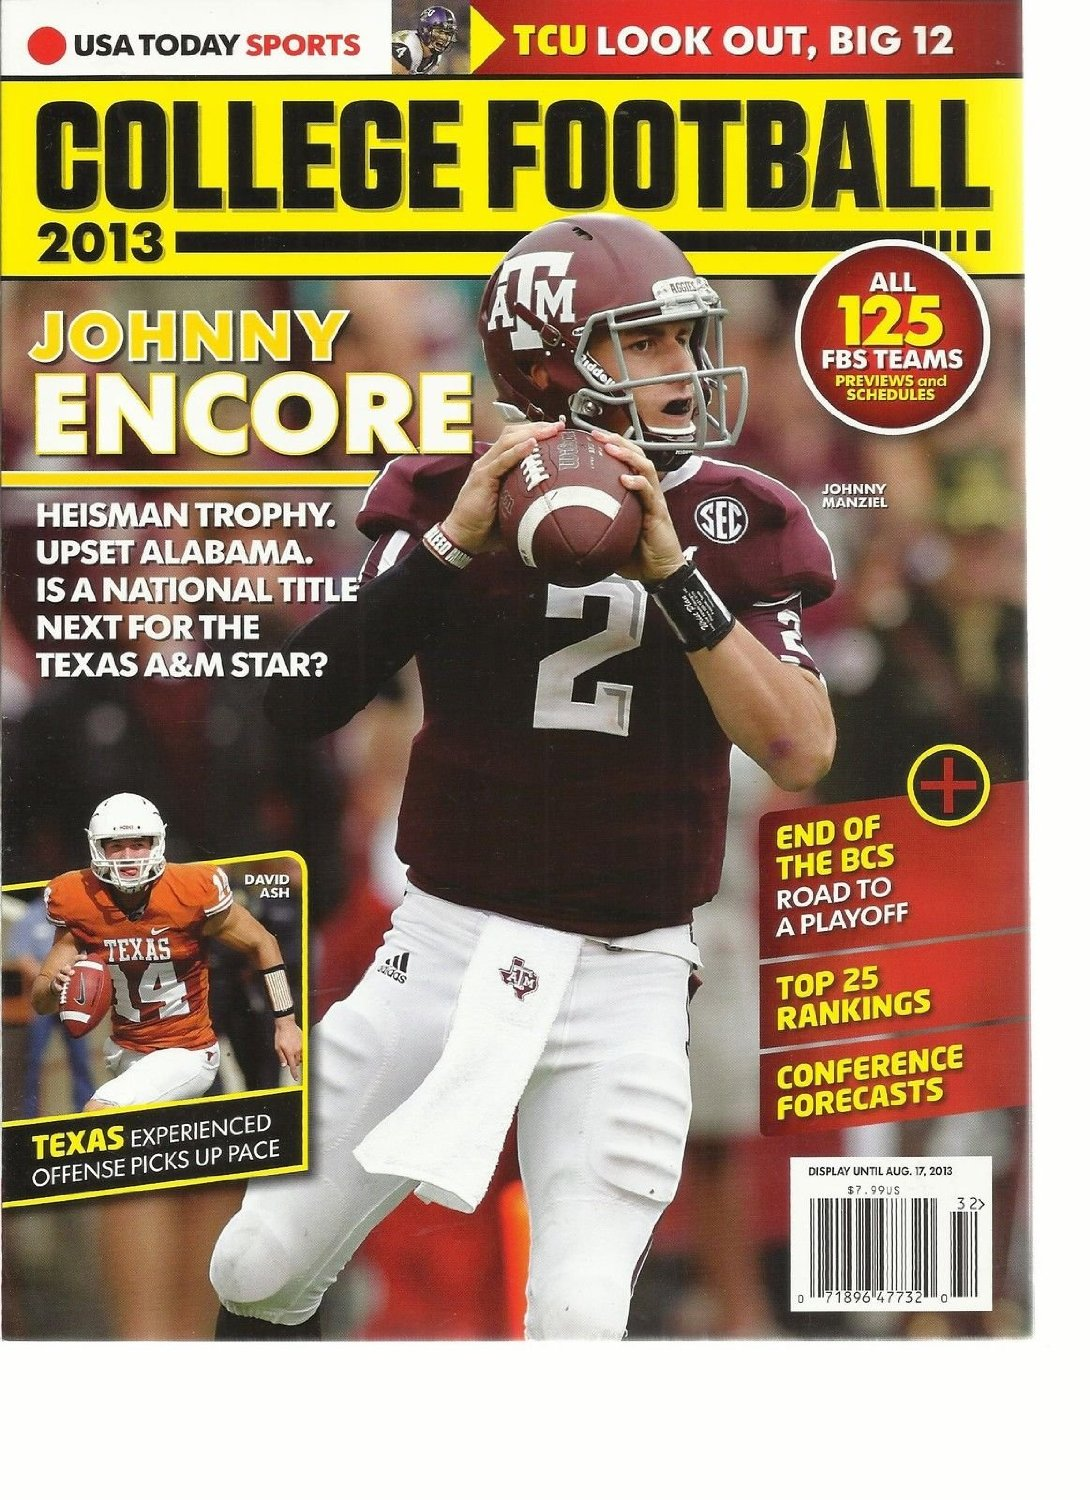 USA TODAY SPORTS, COLLEGE FOOTBALL, 2013 ( TCU LOOK OUT BIG 12 * TOP 25 RANKINGS